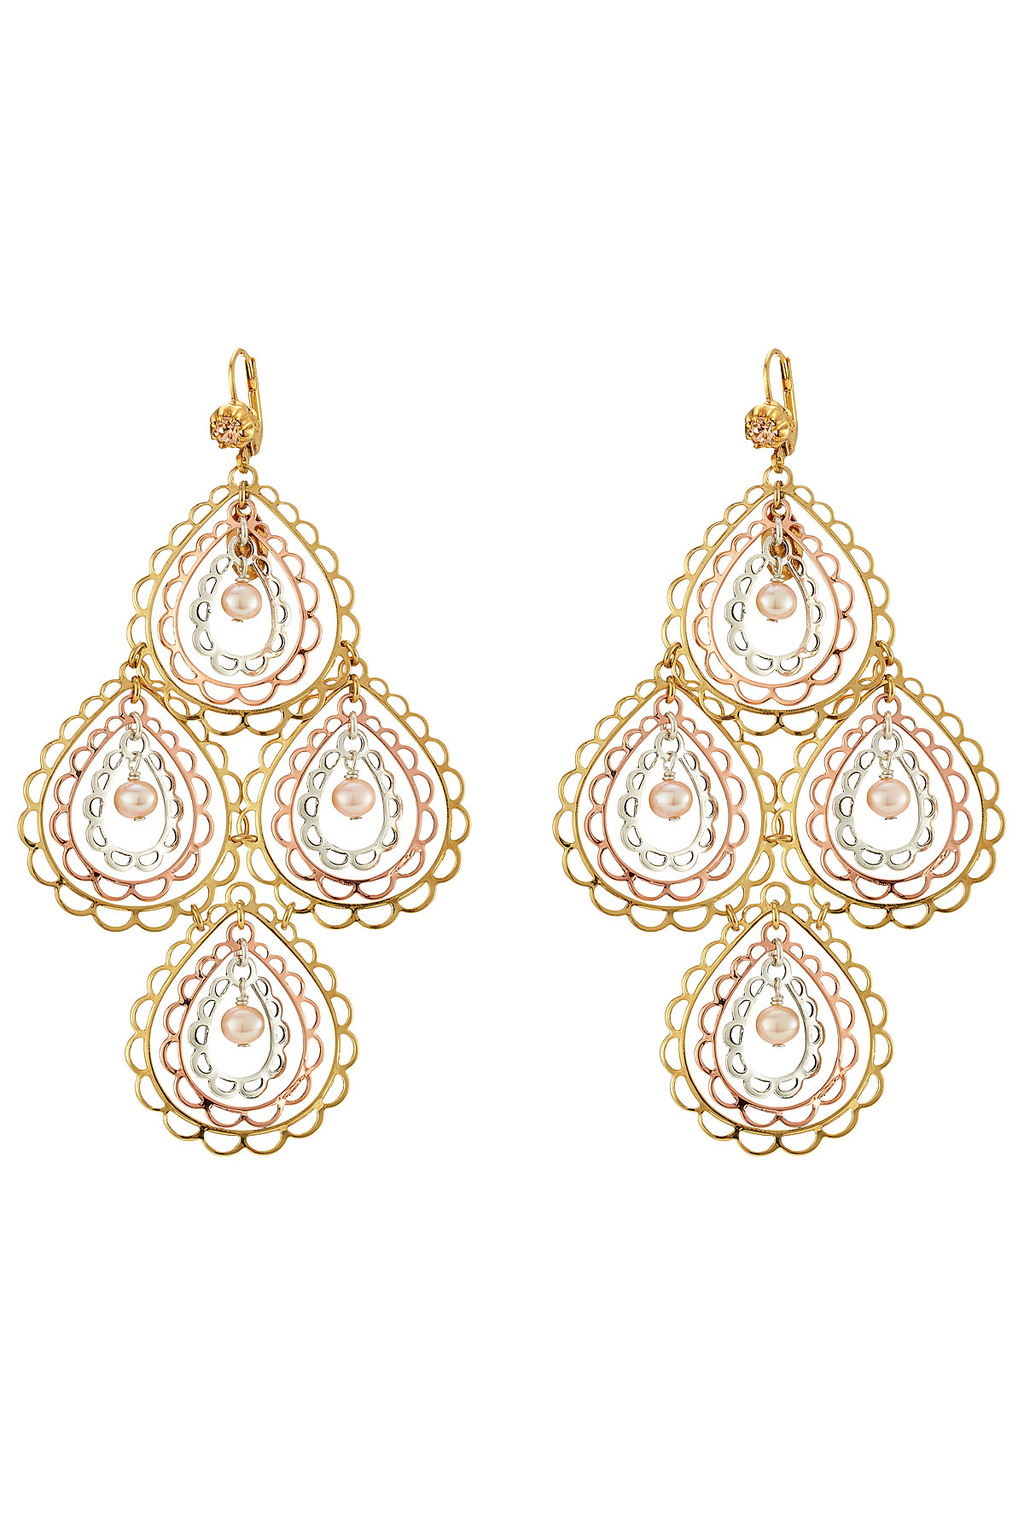 Songe Large 24kt Gold And Silver Plated Chandelier Earrings Pink - secondary colour: pink; predominant colour: gold; occasions: evening, occasion, holiday; style: chandelier; length: mid; size: large/oversized; material: chain/metal; fastening: pierced; finish: metallic; embellishment: jewels/stone; season: s/s 2016; wardrobe: highlight